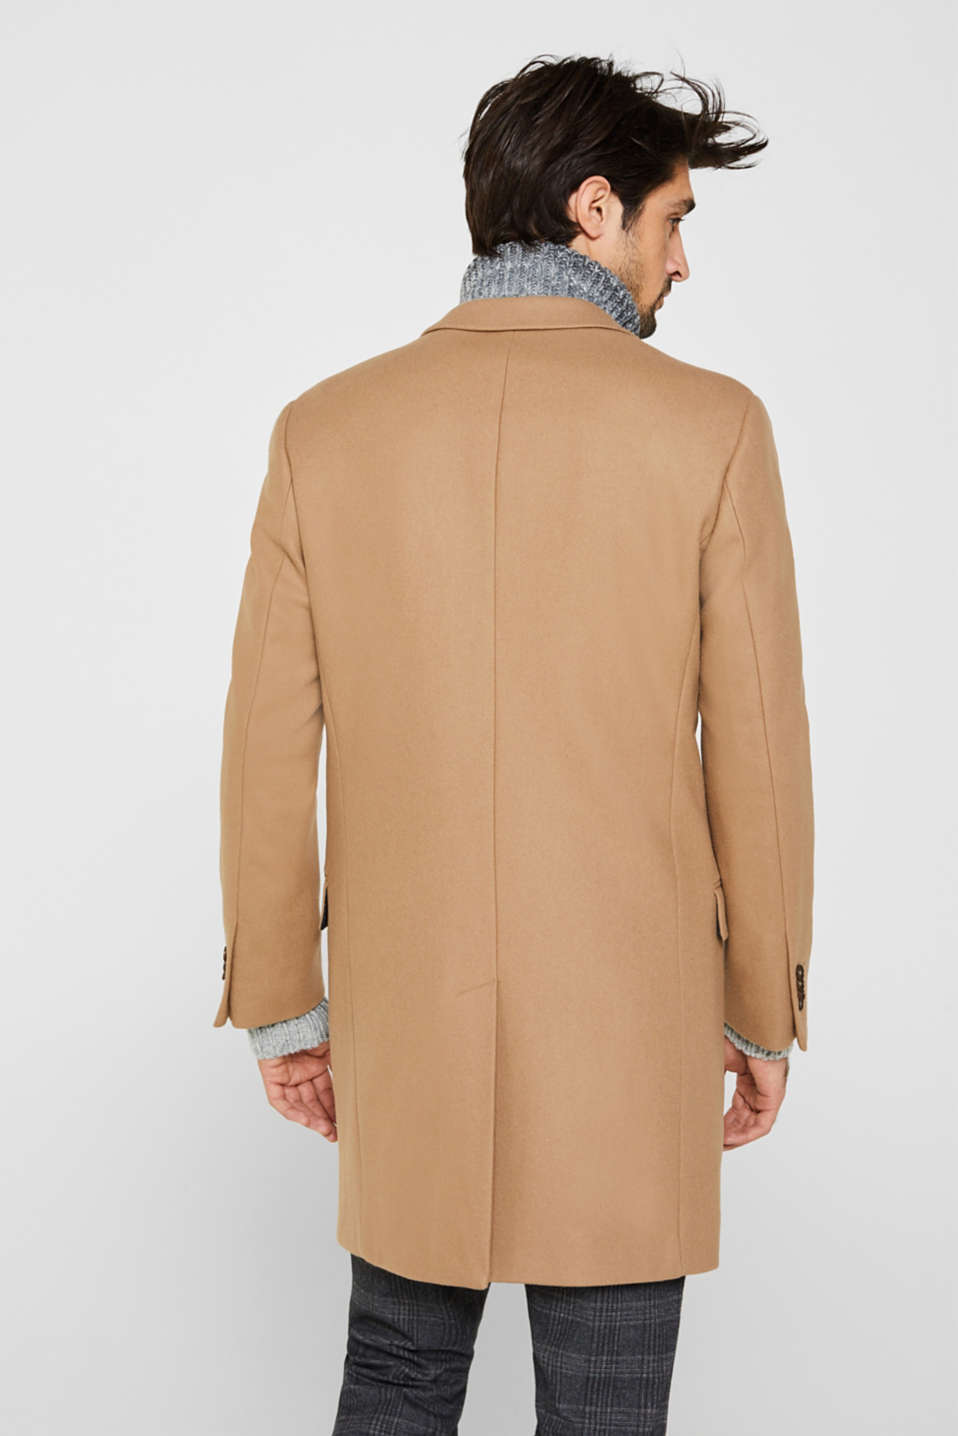 Wool blend: Coat made of Italian yarn, CAMEL, detail image number 3